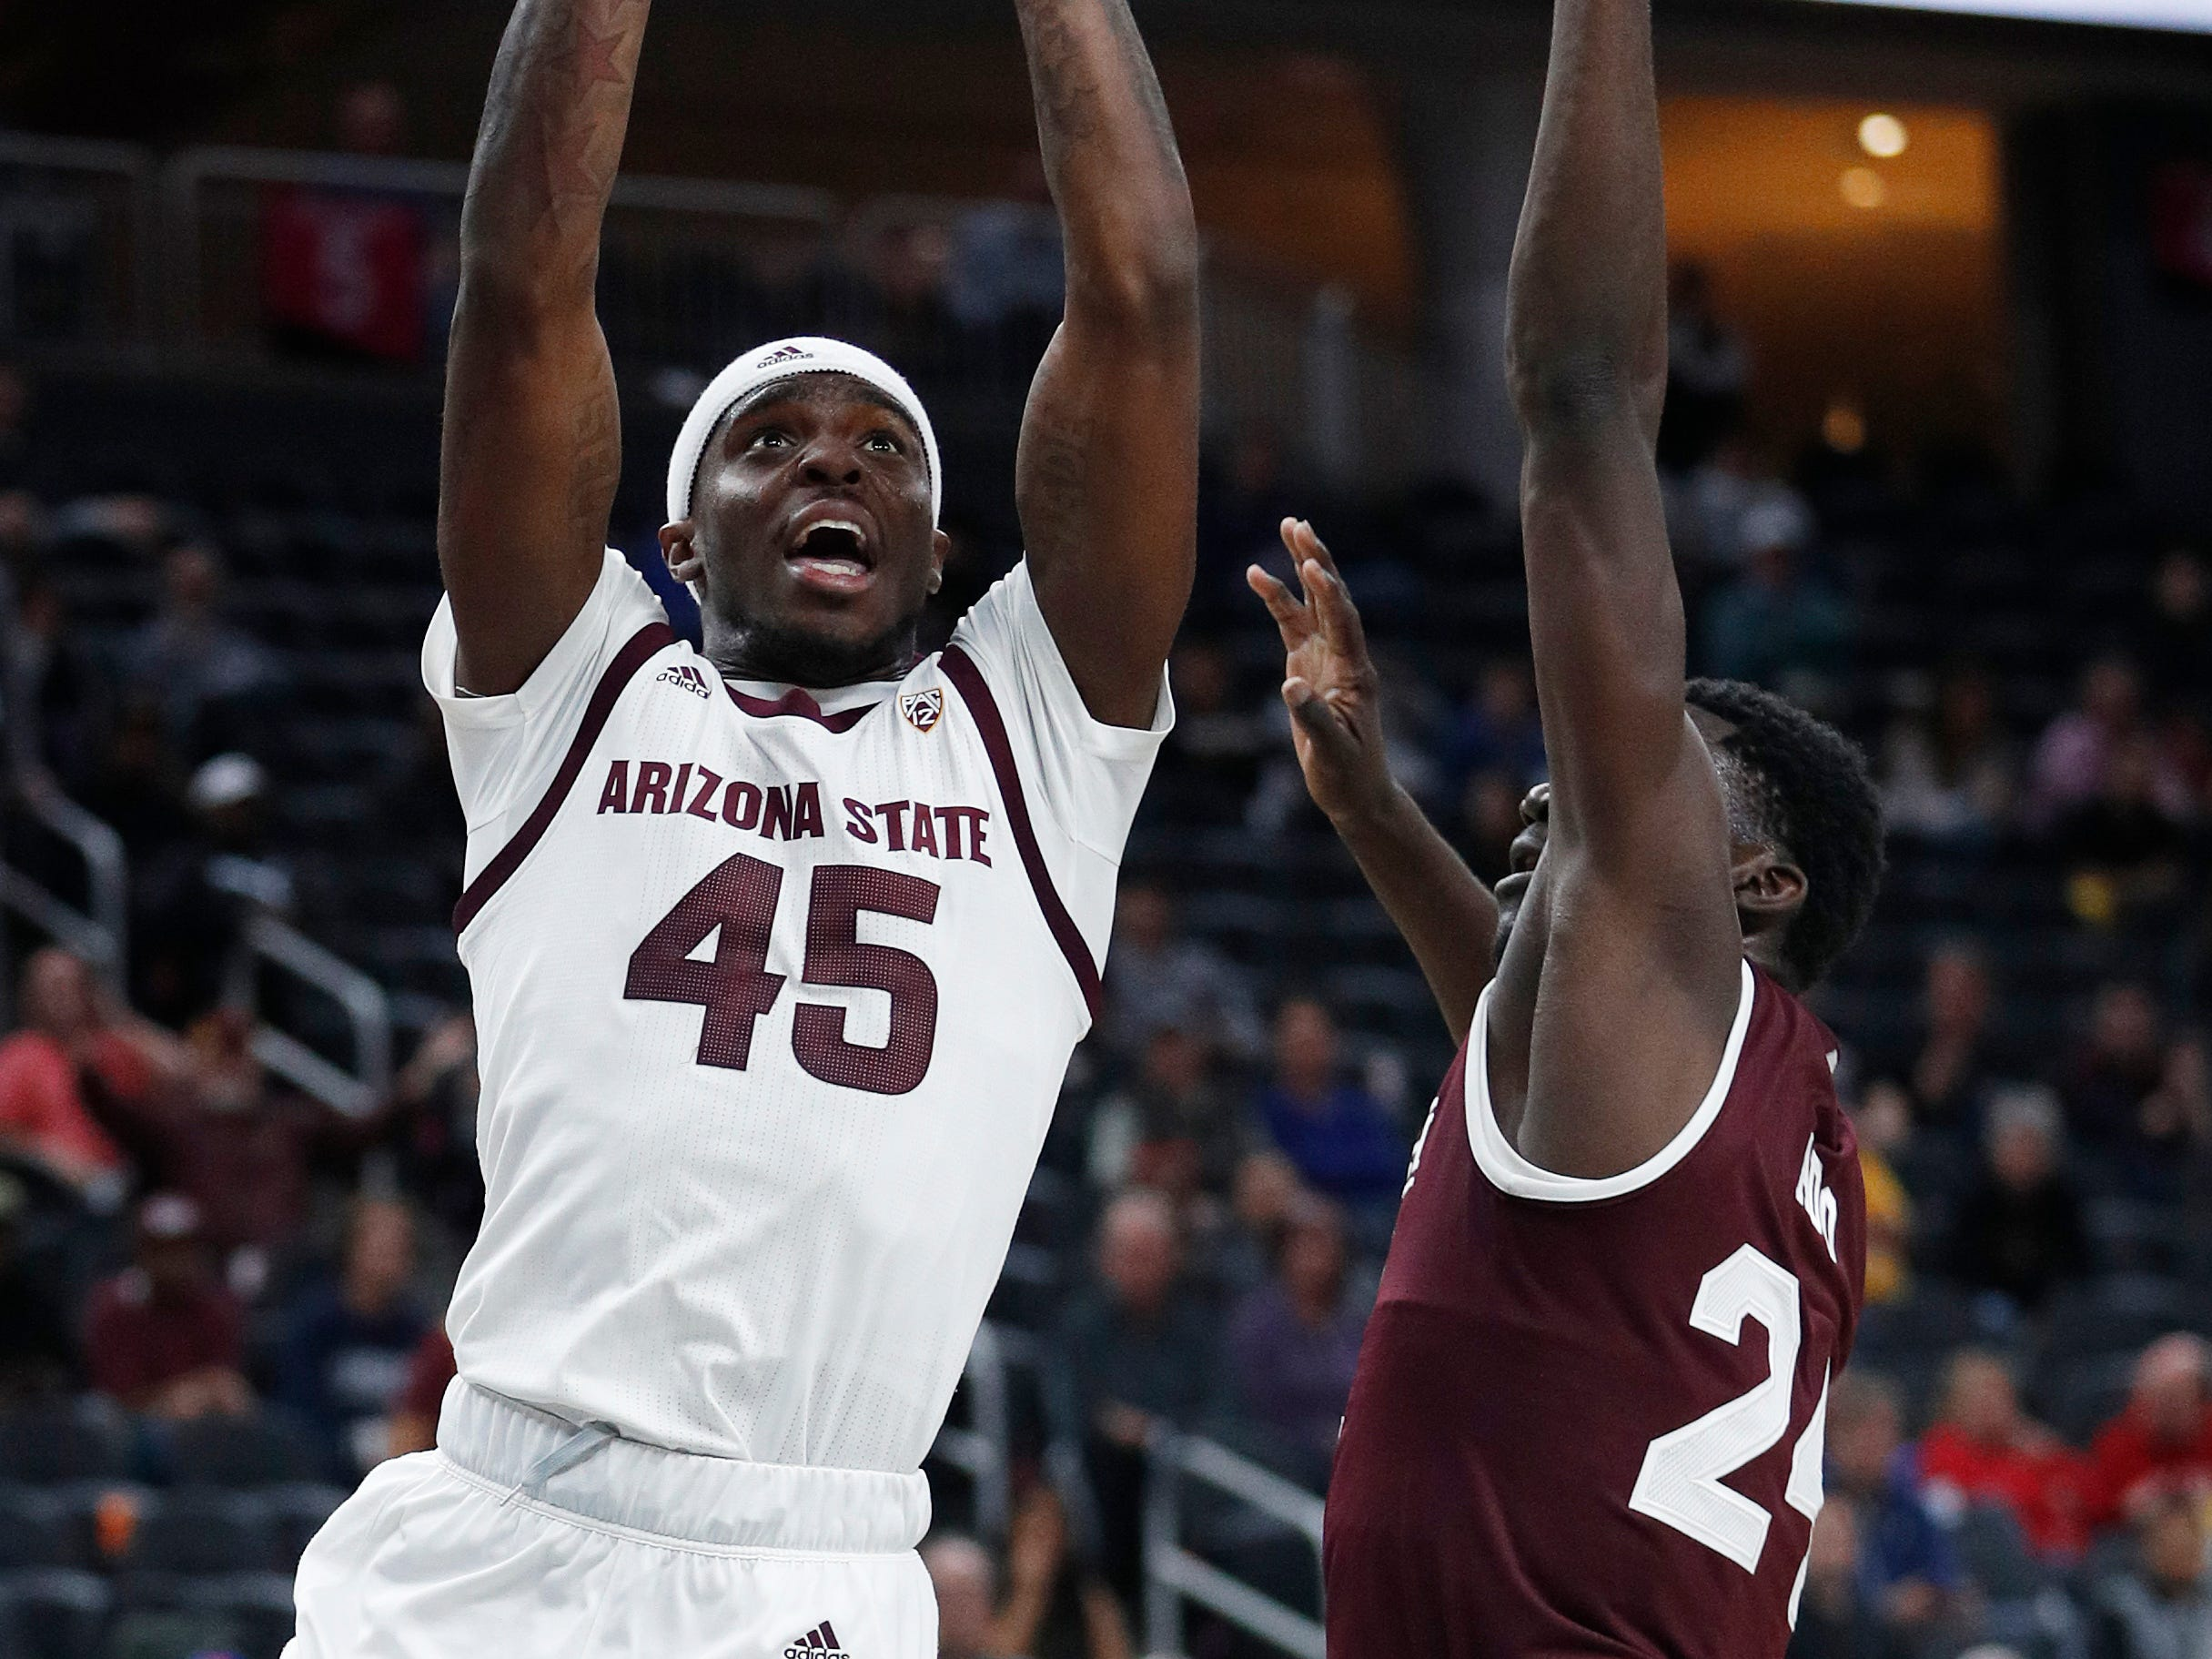 Arizona State's Zylan Cheatham (45) shoots around Mississippi State's Abdul Ado (24) during the first half of a NCAA college basketball game Monday, Nov. 19, 2018, in Las Vegas. (AP Photo/John Locher)